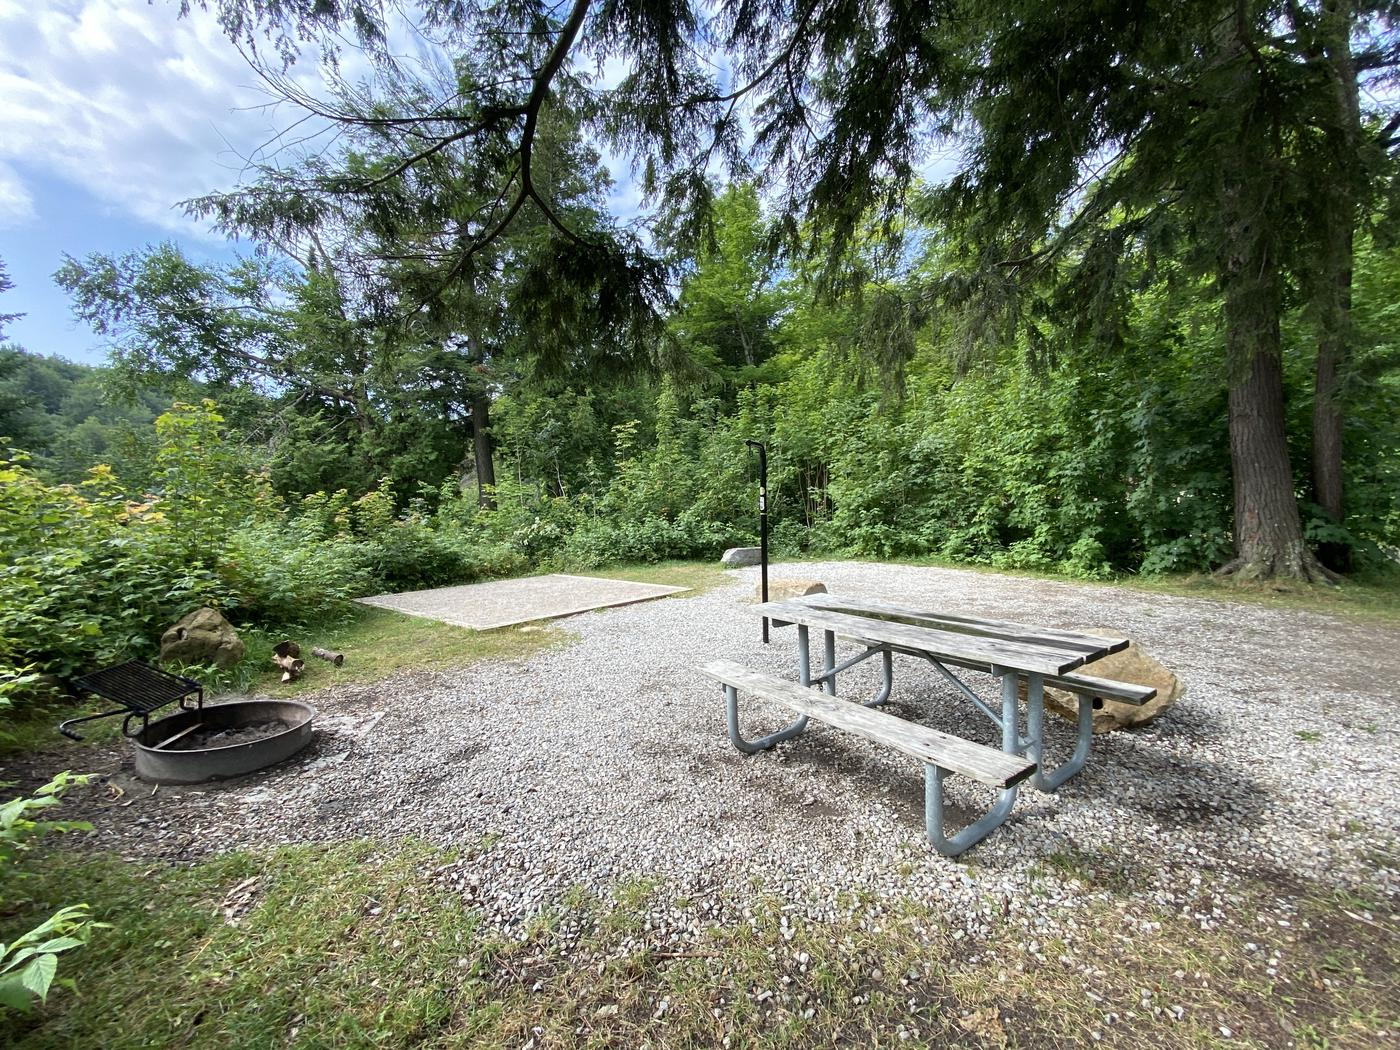 Fire ring, picnic table, lantern pole and tent pad.